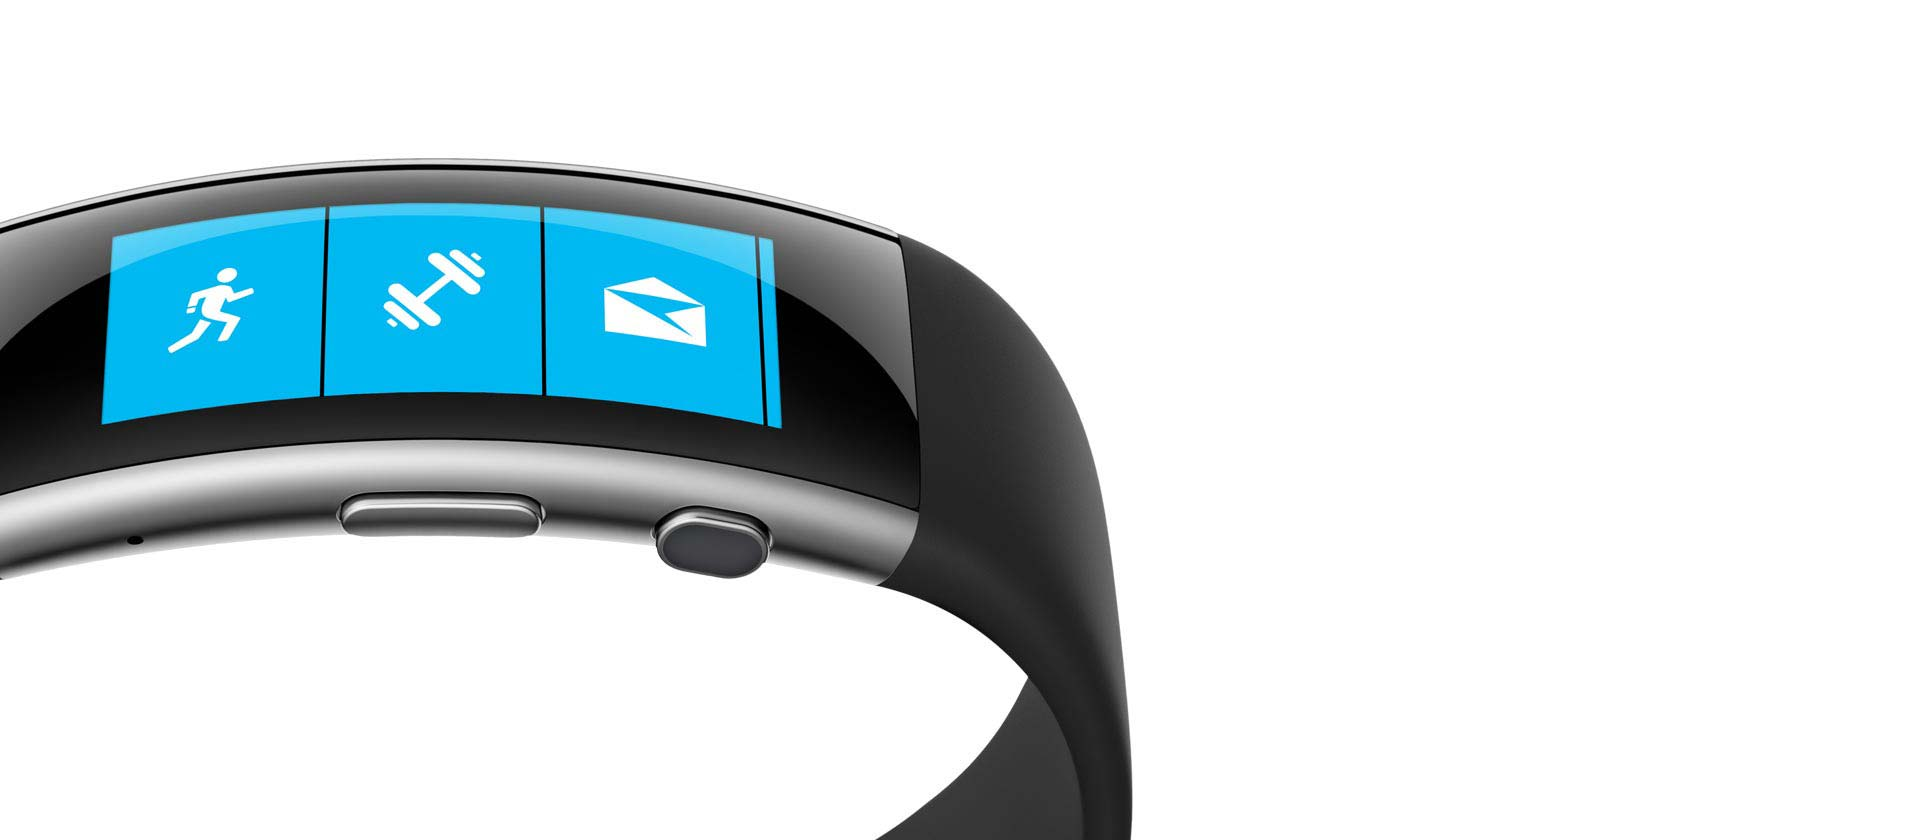 The new Microsoft Band